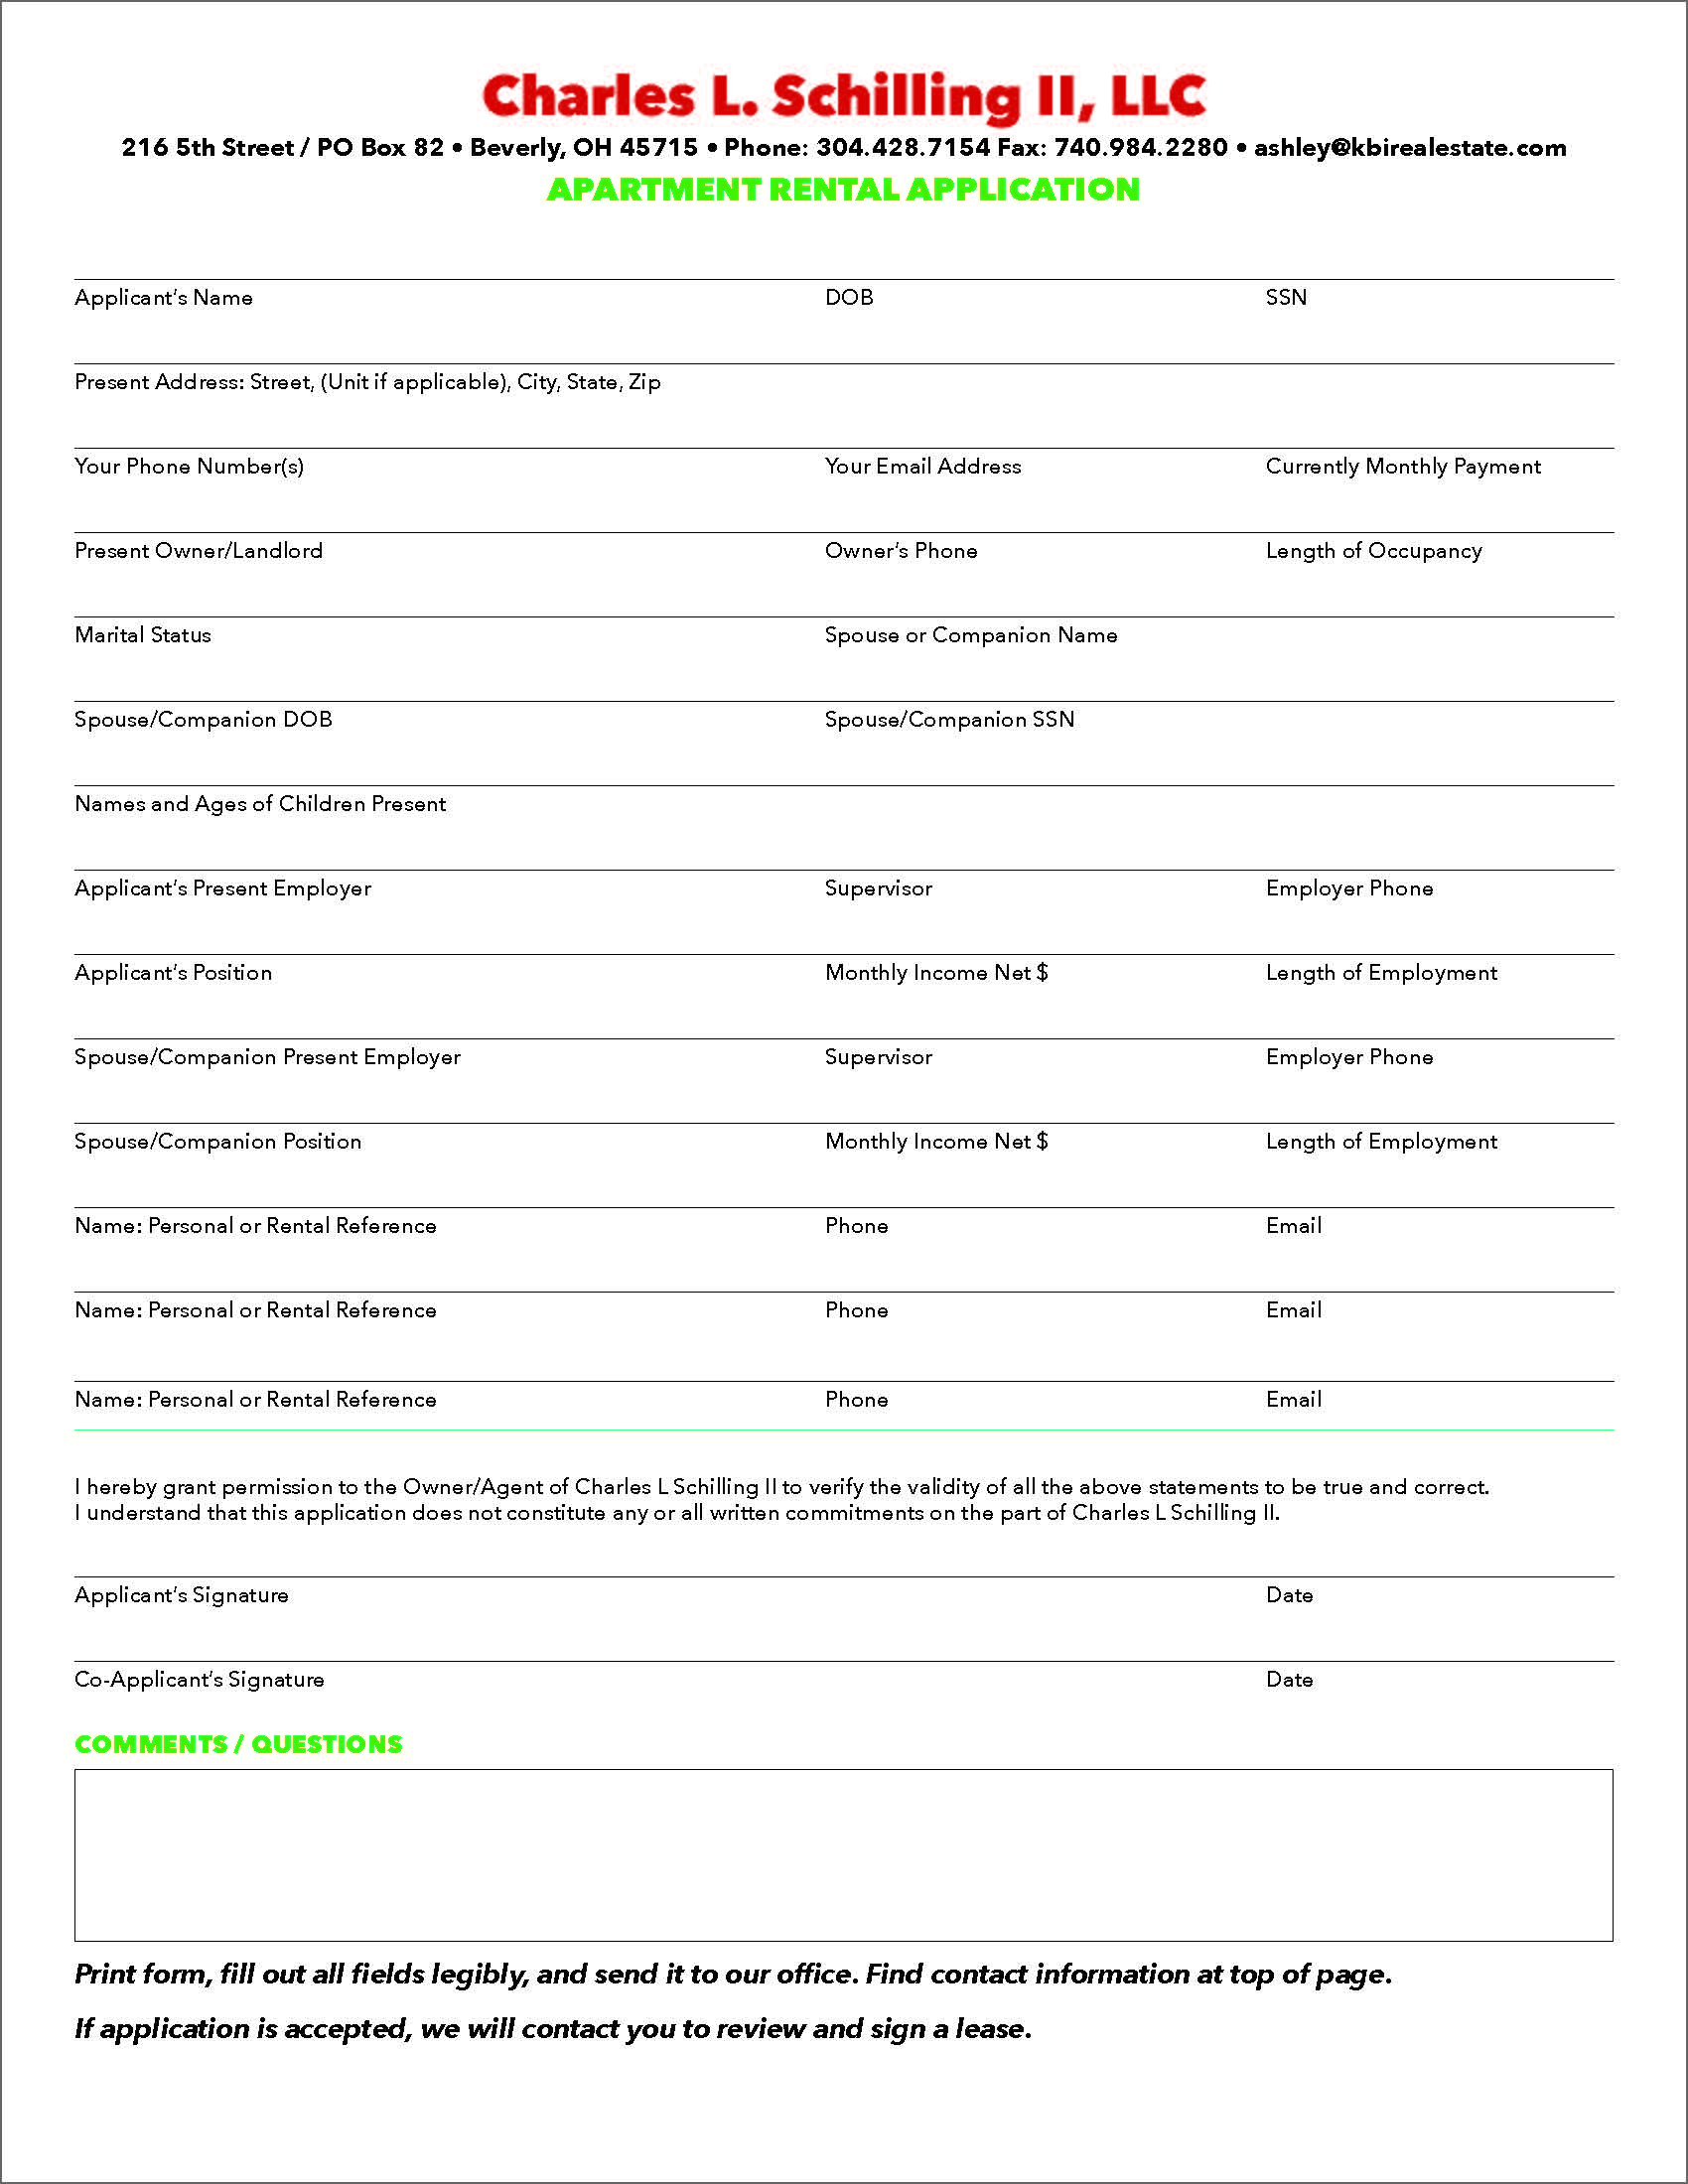 Apartment Rental Application KBI Real Estate LLC – Apartment Application Form